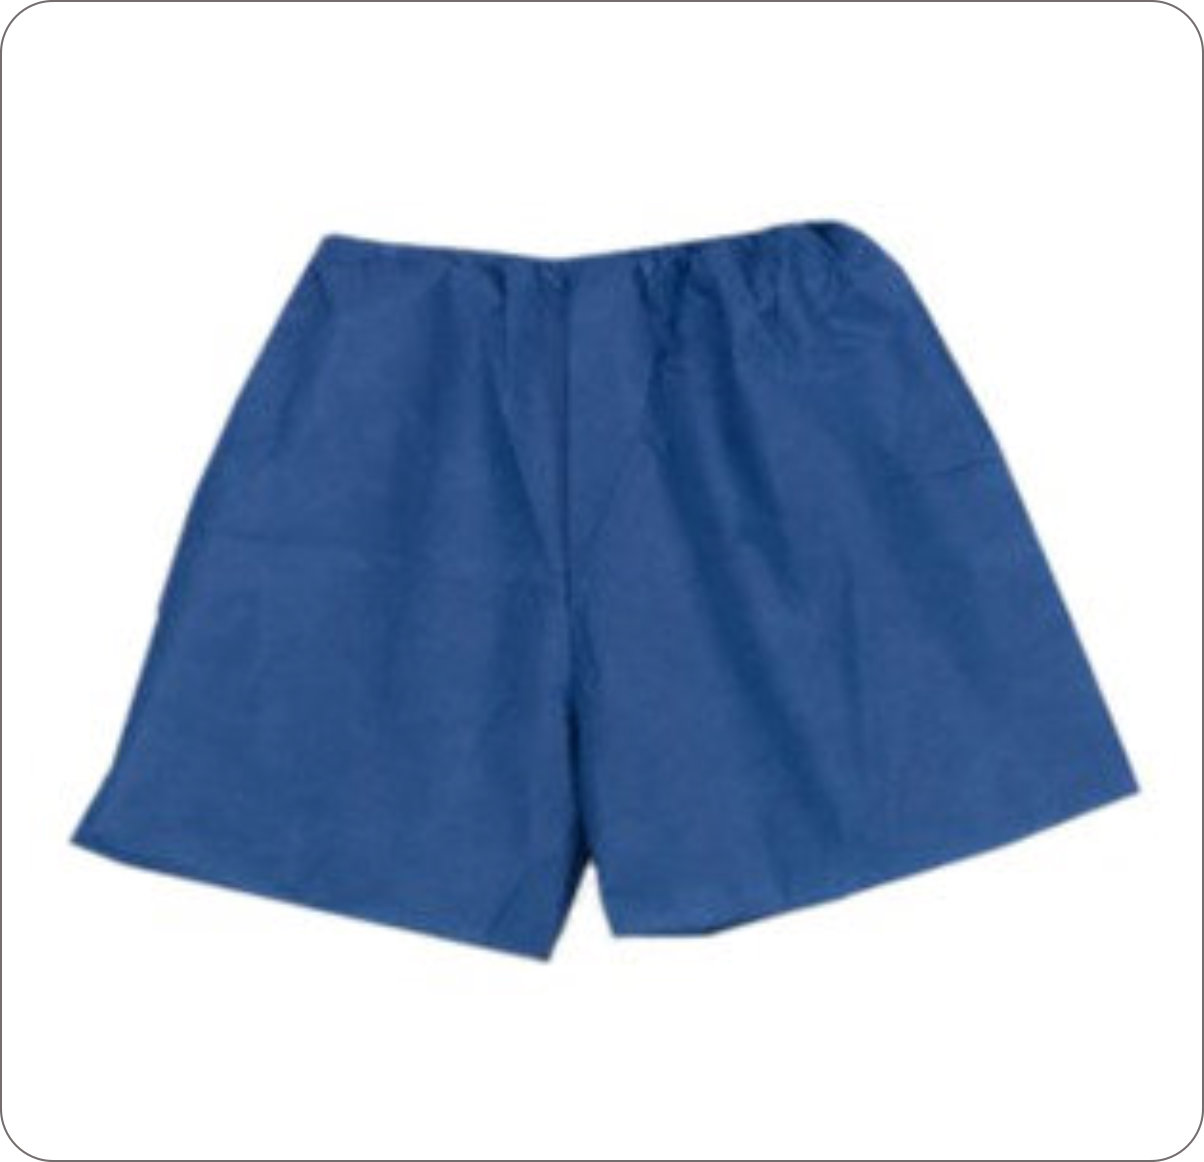 Exam Shorts Disposable Non-Woven 10000